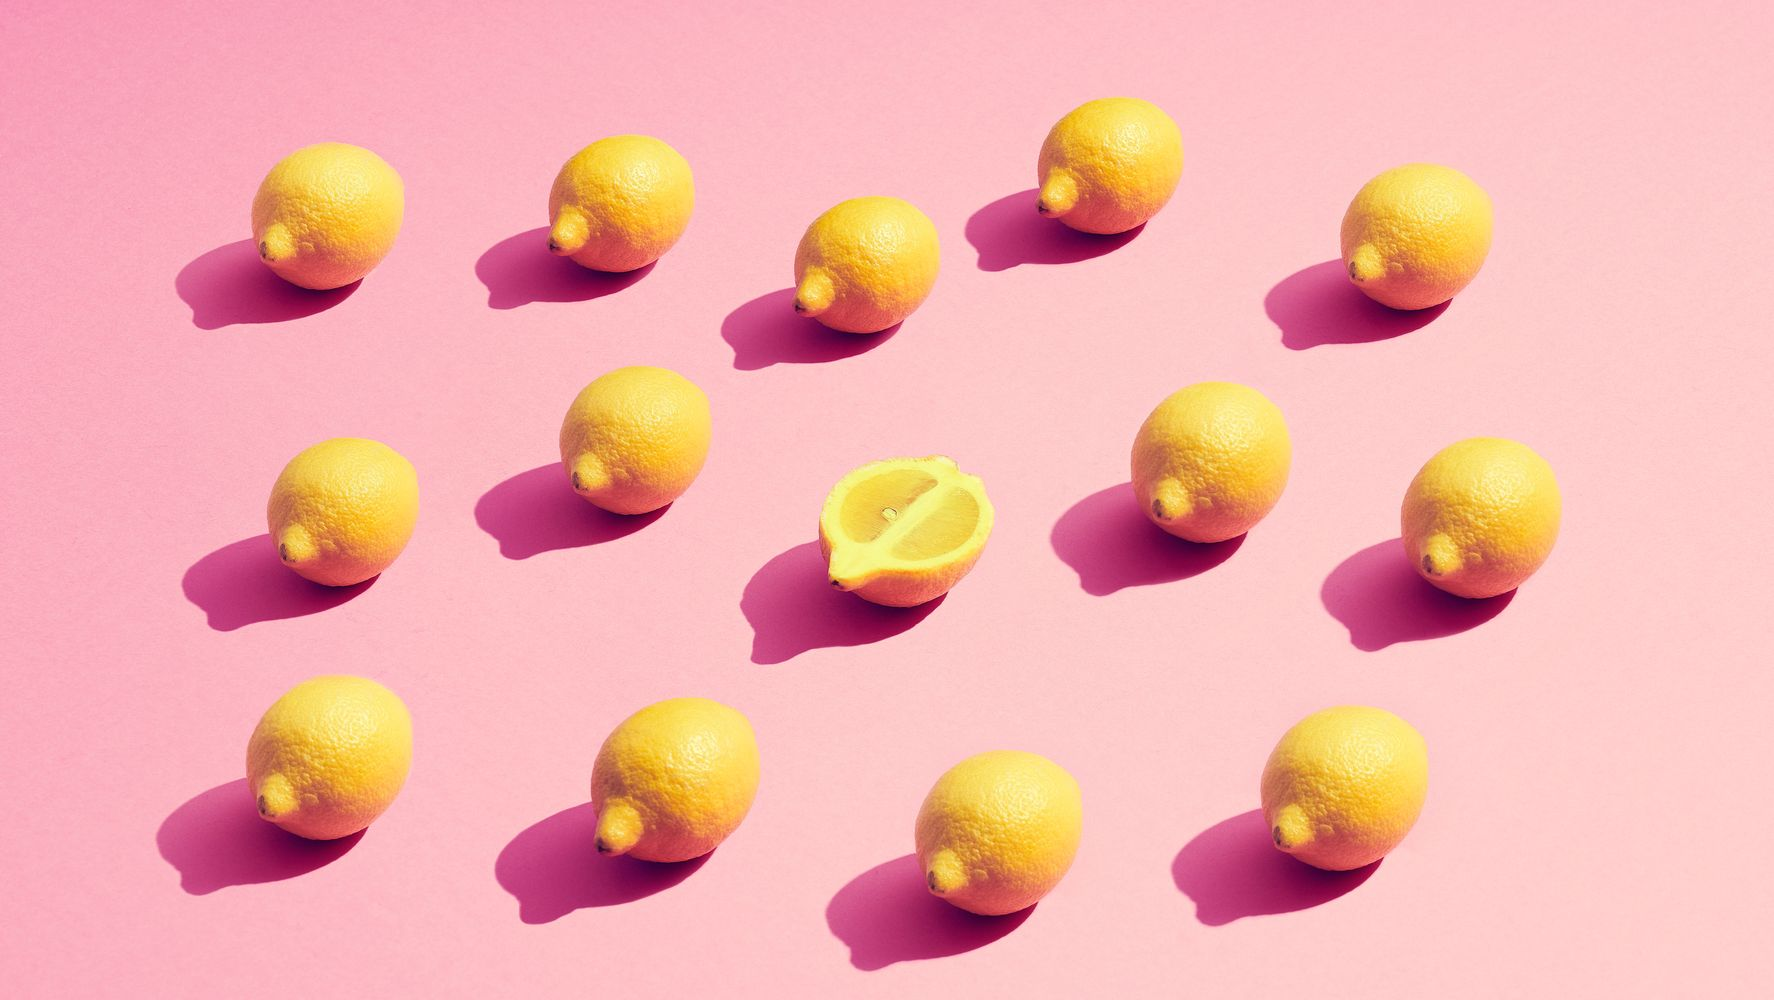 Vegan? Here's Why You Might Not Want A Slice Of Lemon In Your Drink